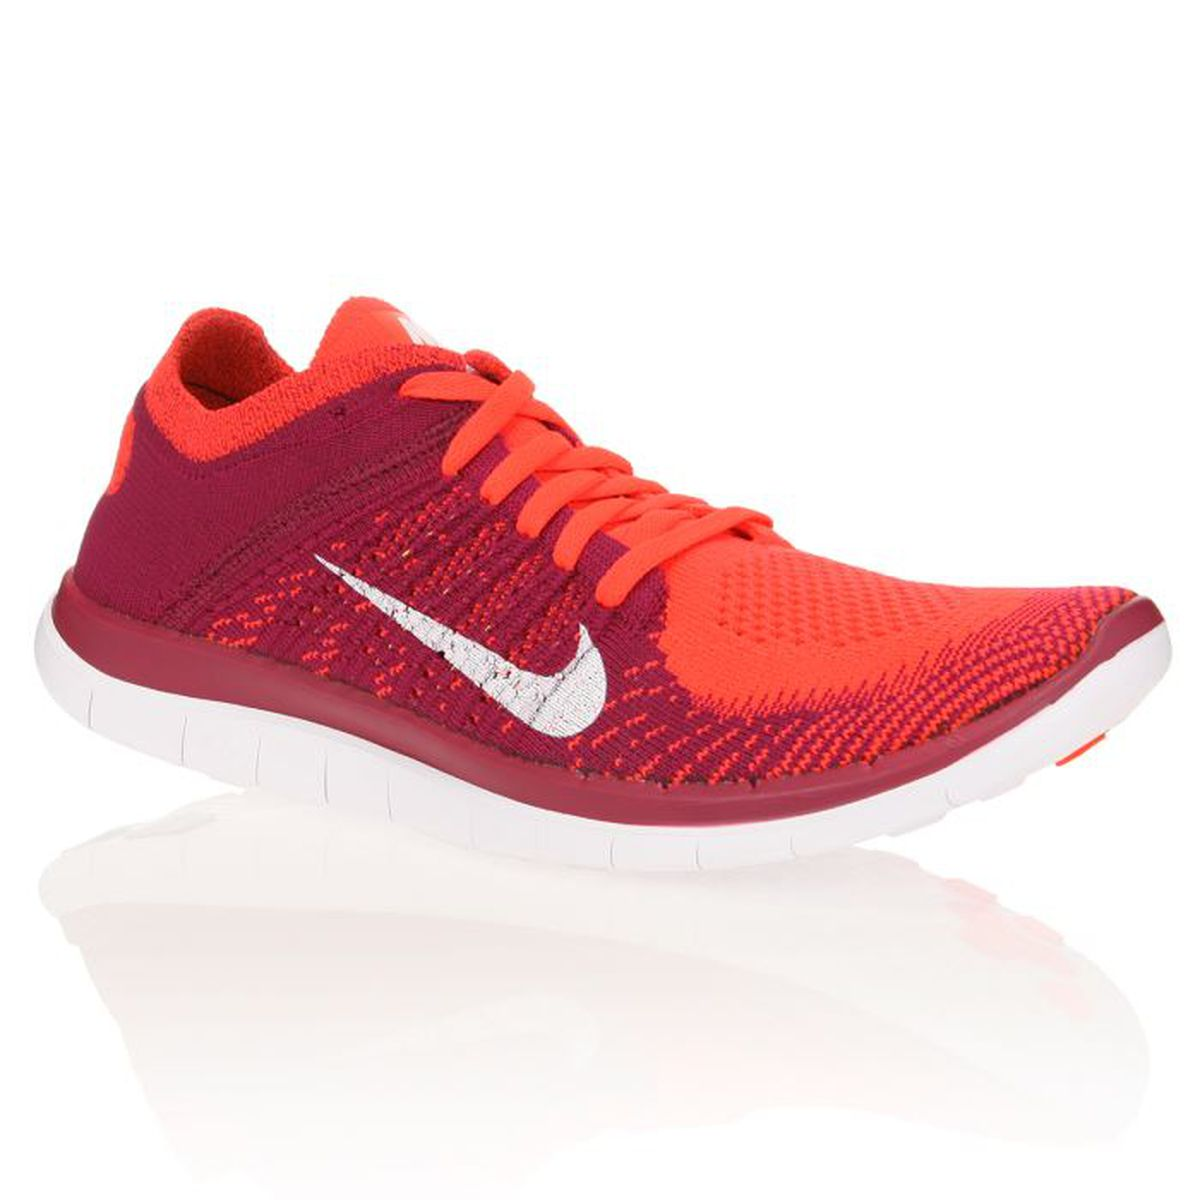 nike chaussures running free run 4 0 flyknit femme prix pas cher cdiscount. Black Bedroom Furniture Sets. Home Design Ideas